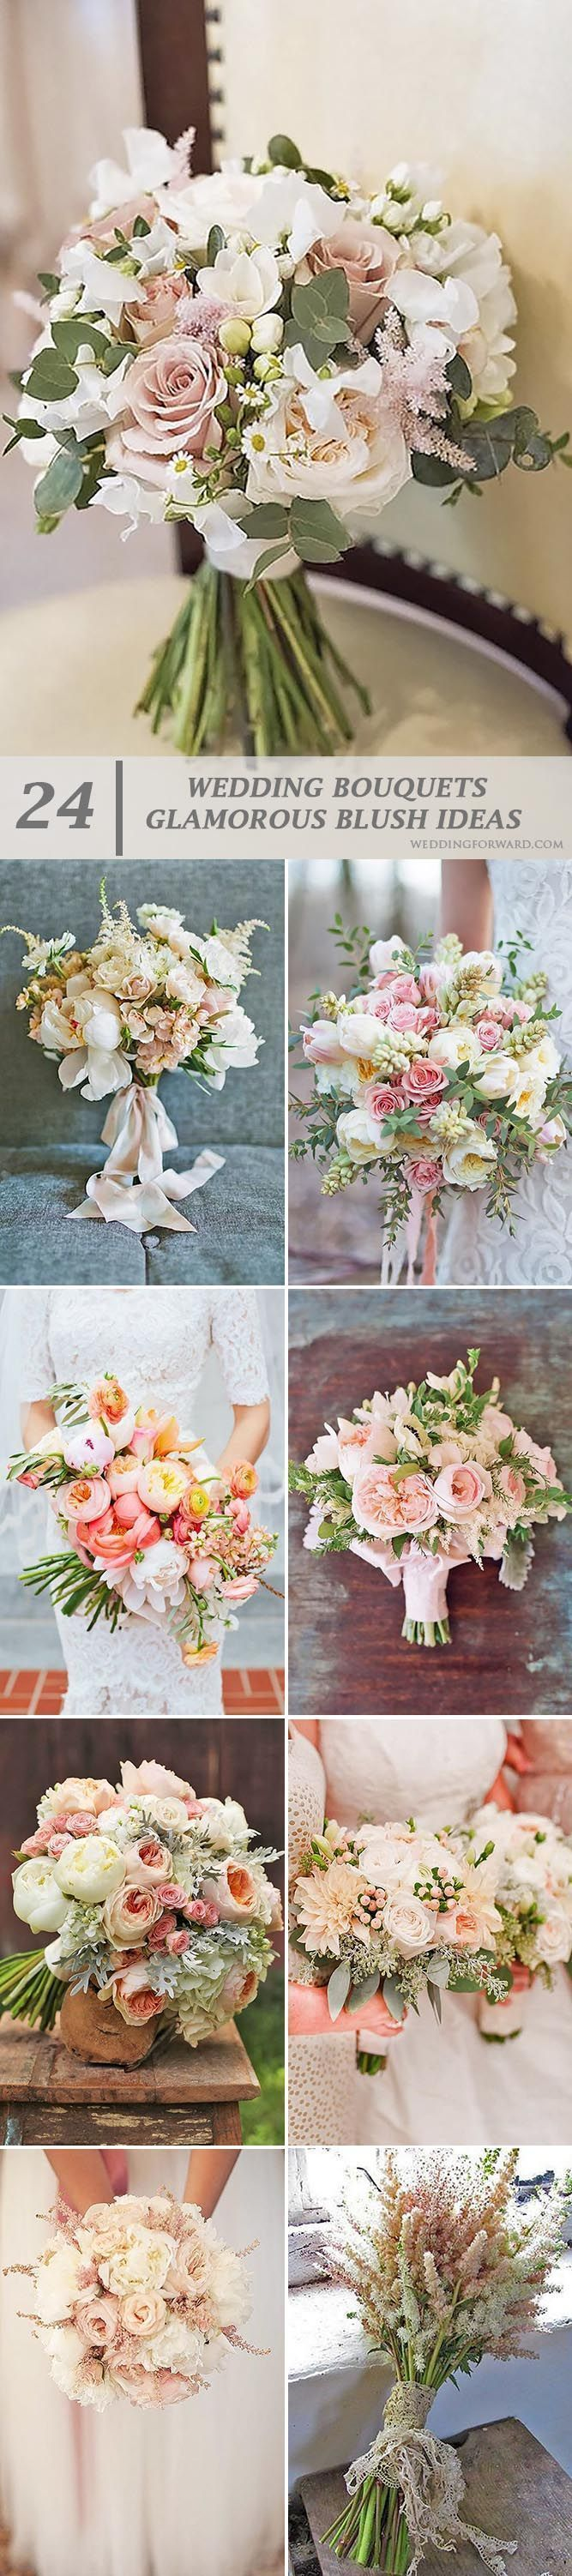 24 Glamorous Blush Wedding Bouquets That Inspire ❤ Magnificent blush wedding bouquets offer you a beautiful variety of choices, inspiration and excitement we live for. See more: http://www.weddingforward.com/blush-wedding-bouquets/ #weddings #bouquets #seeglasswedding